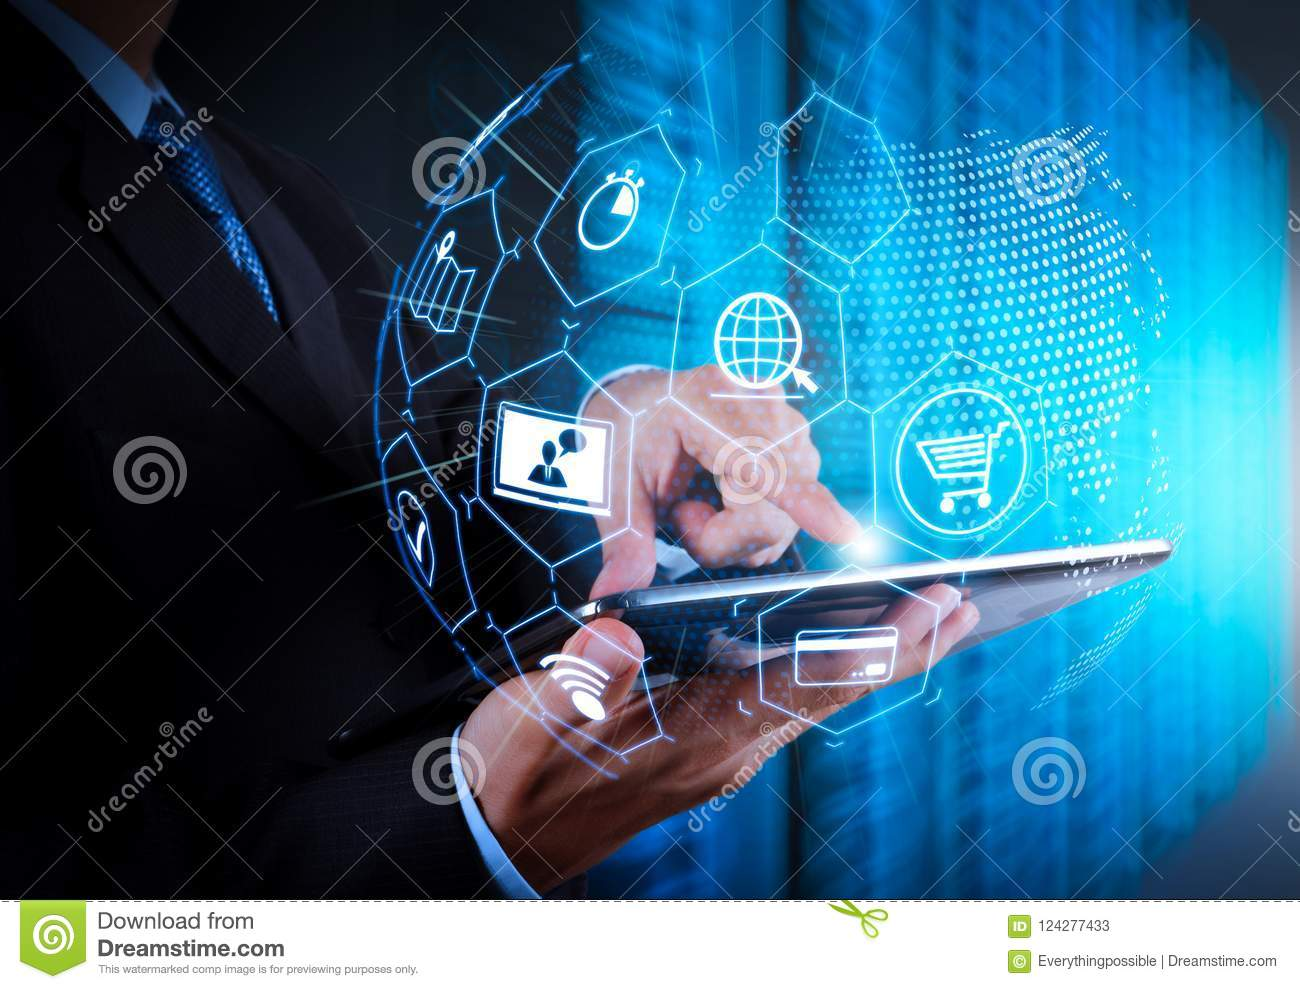 E-commerce concept with VR digital interface with icons of shopping cart and delivery truck and credit card with symbol of online